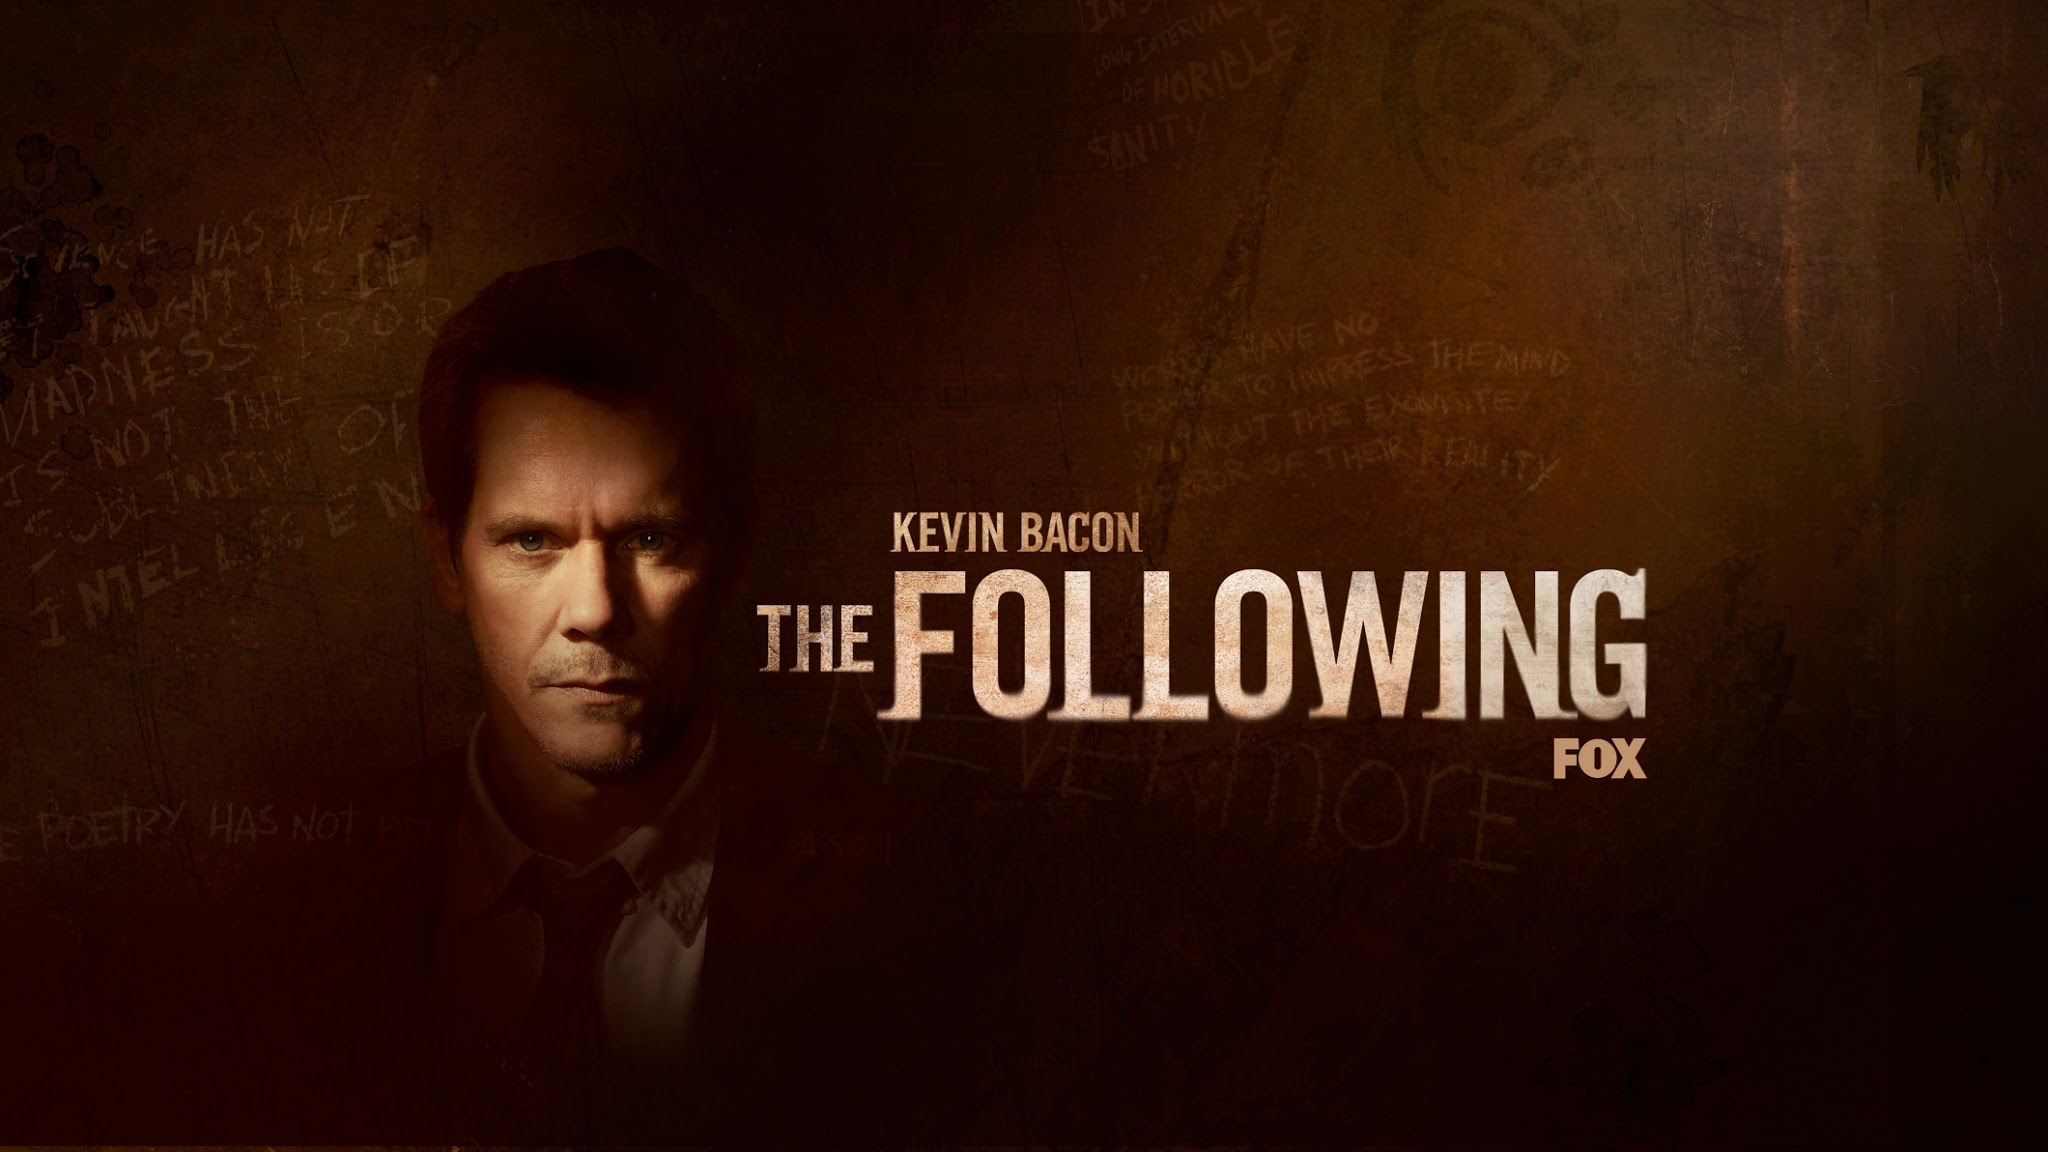 The-Following-9-HD-Image